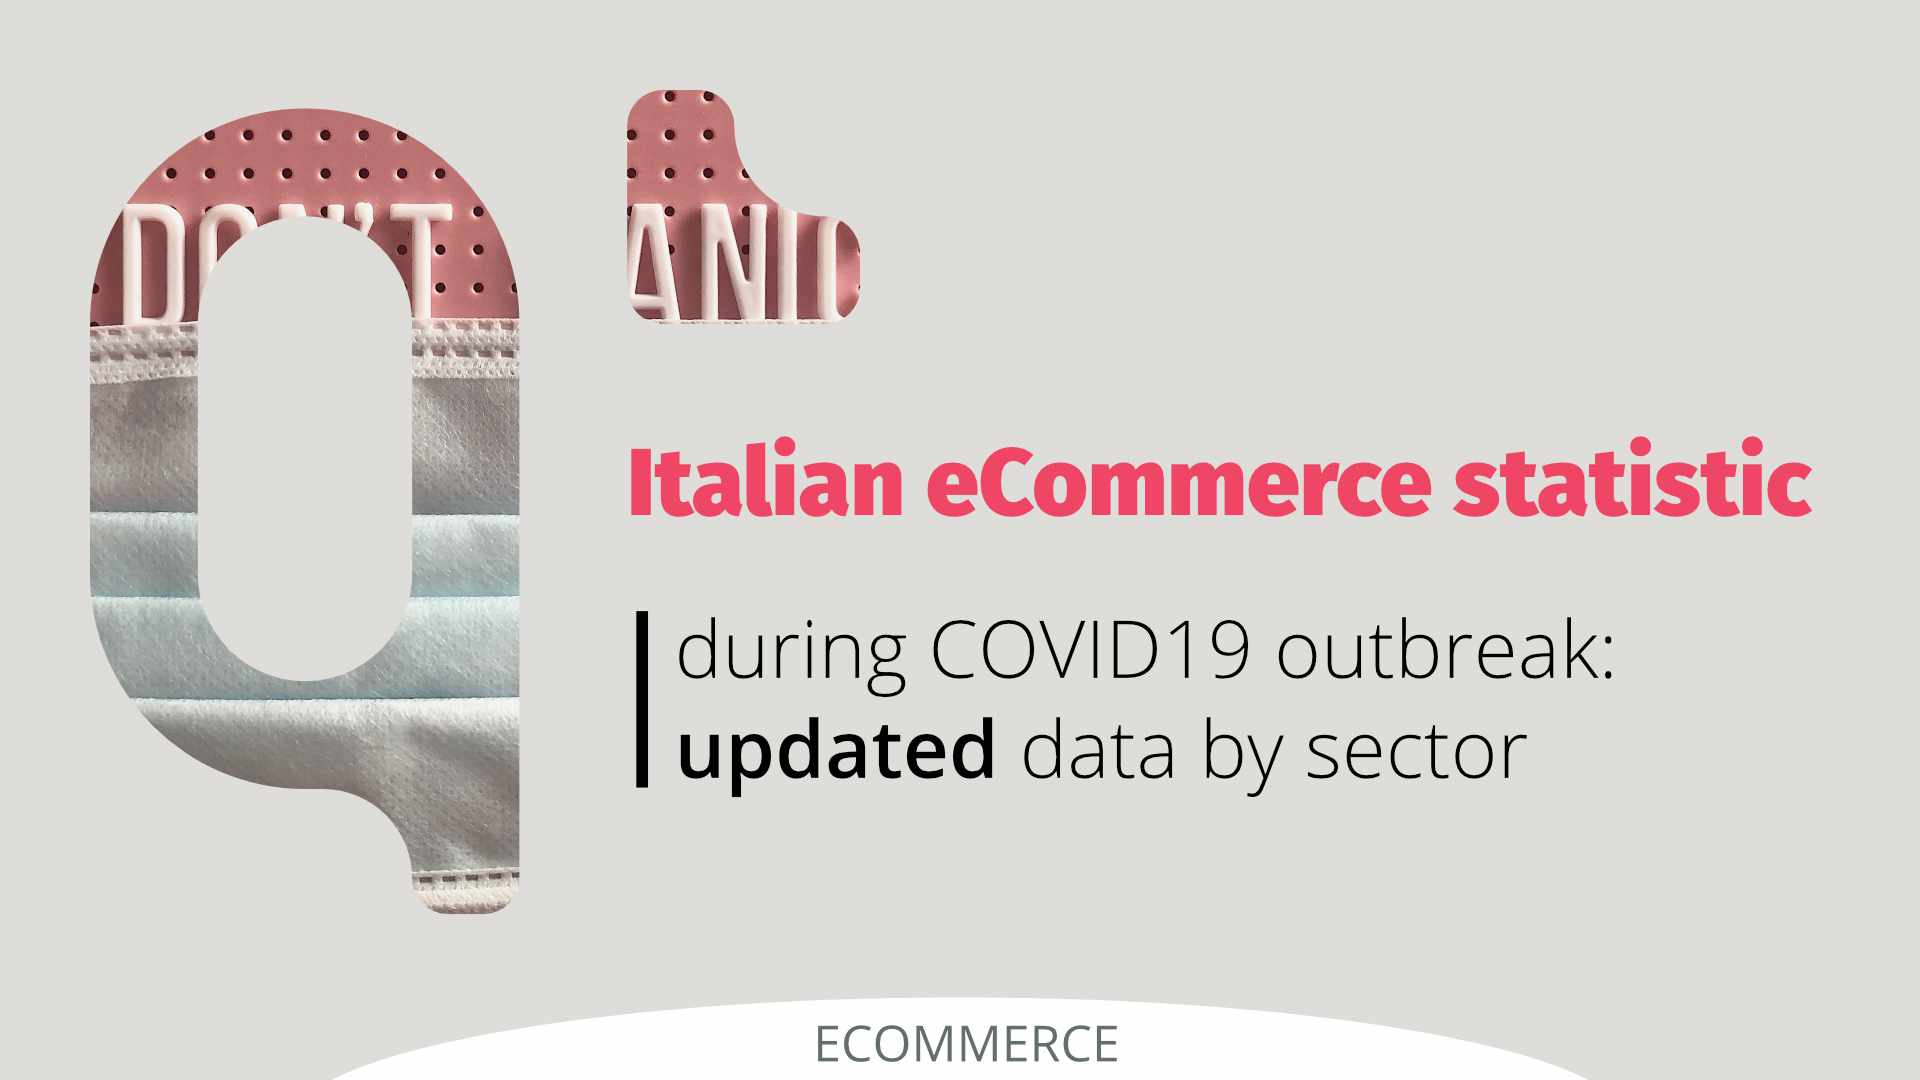 Italian eCommerce statistics during COVID19 outbreak: updated data by sector